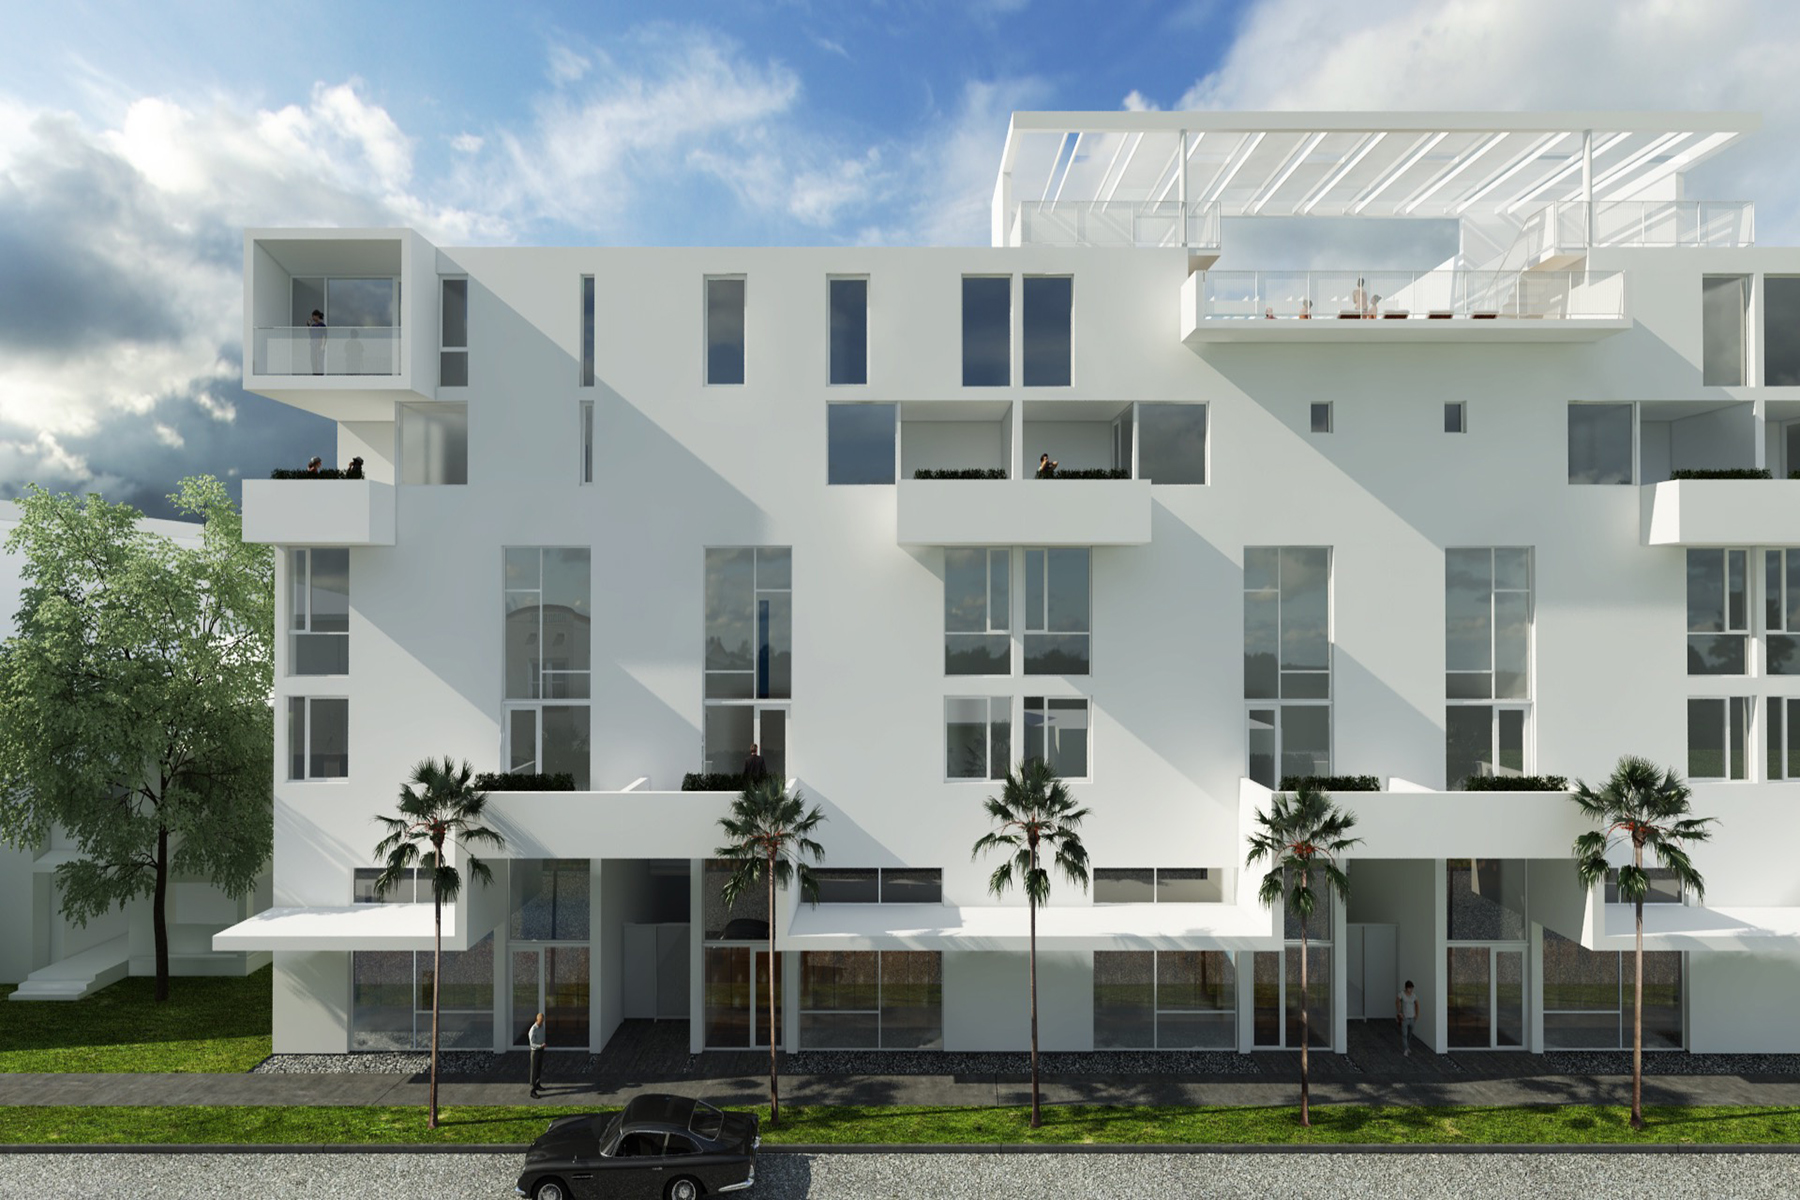 Condominium for Sale at RISDON ON 5TH 1350 5th St 205 Rosemary District, Sarasota, Florida, 34236 United States